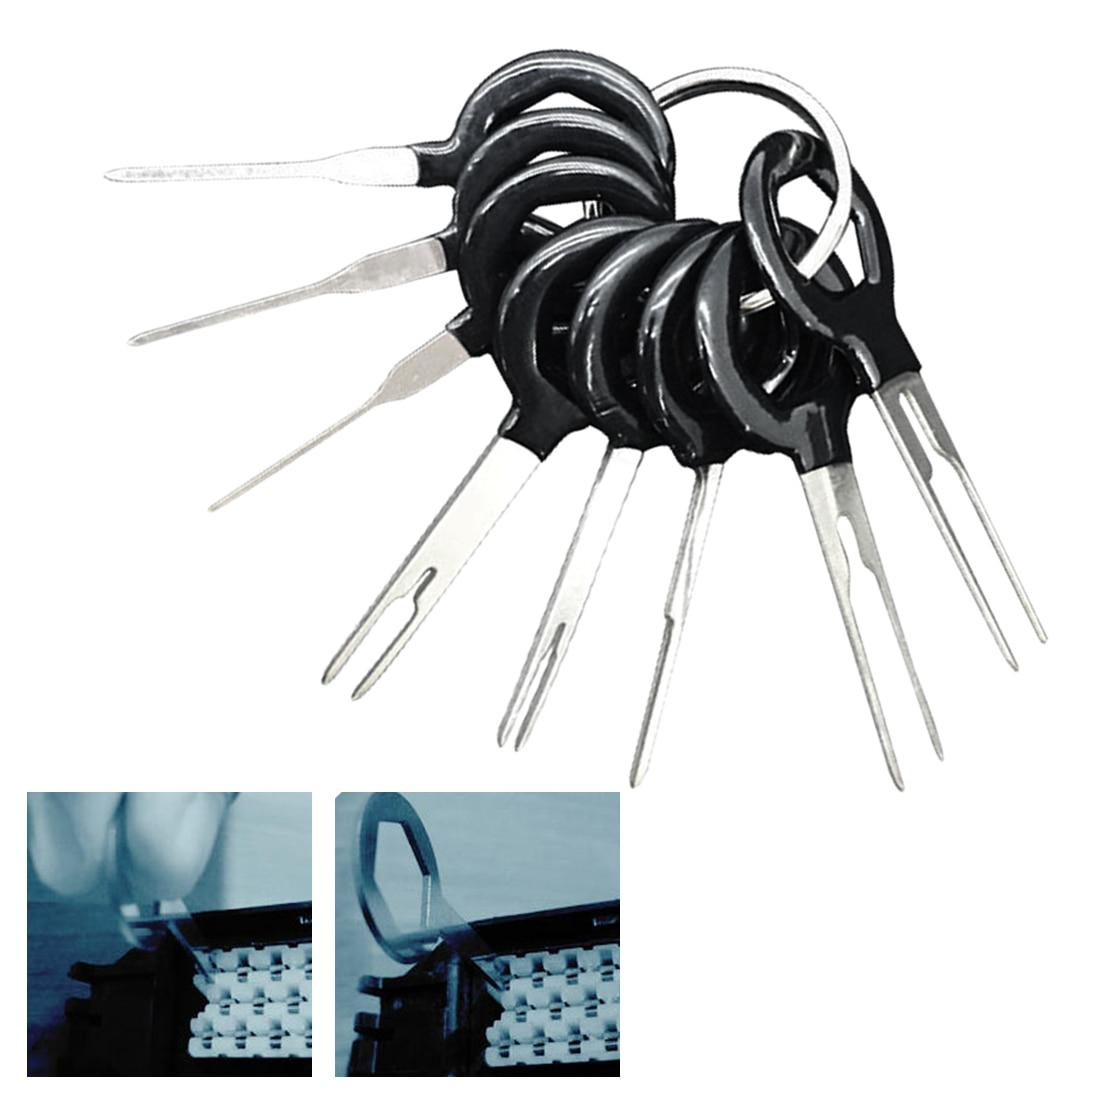 hight resolution of terminal removal tool car repair tool electrical wiring crimp connector